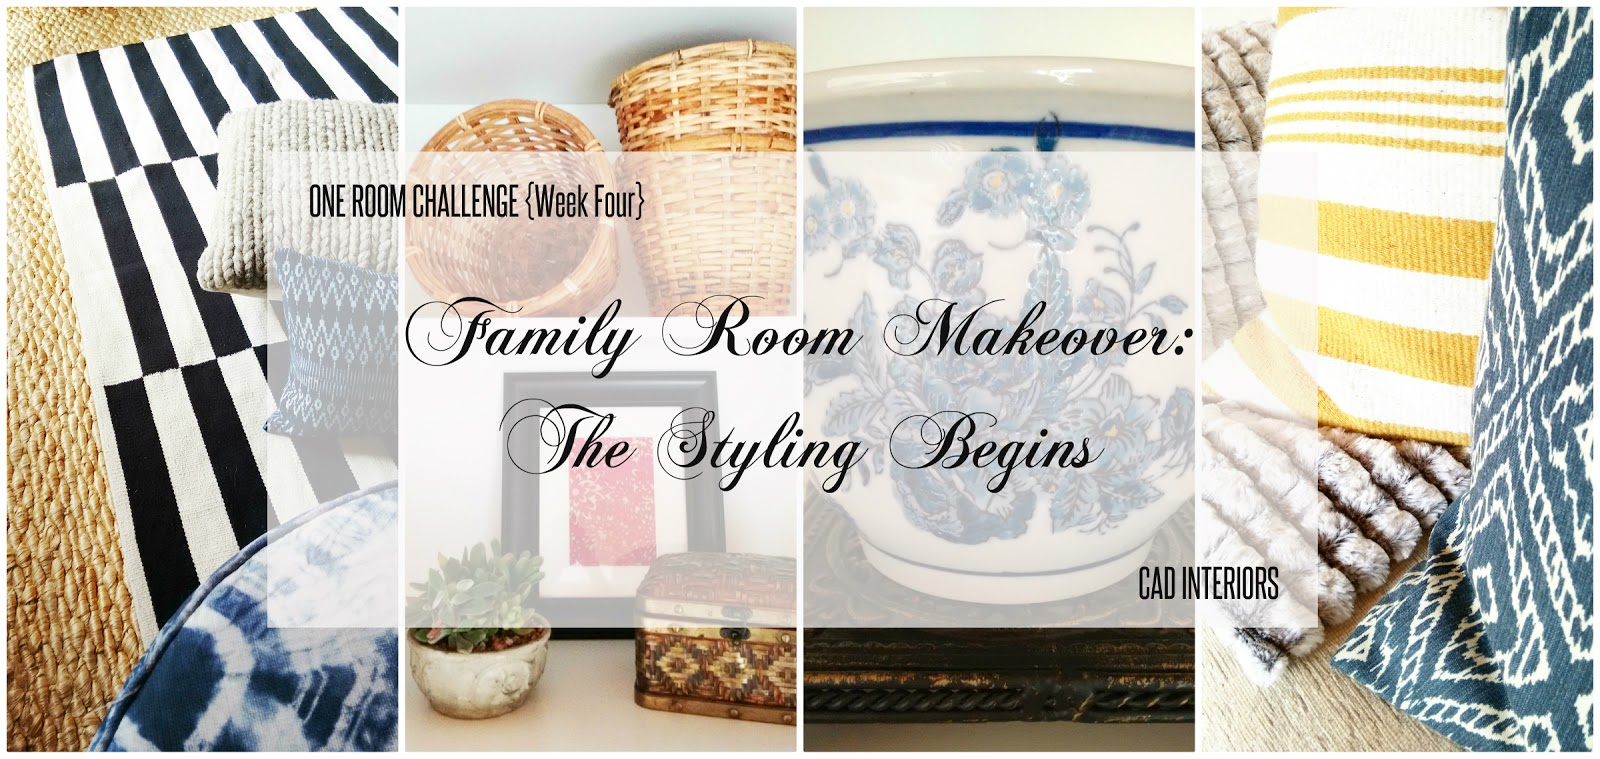 Fall 2015 ORC CAD INTERIORS family room makeover styling